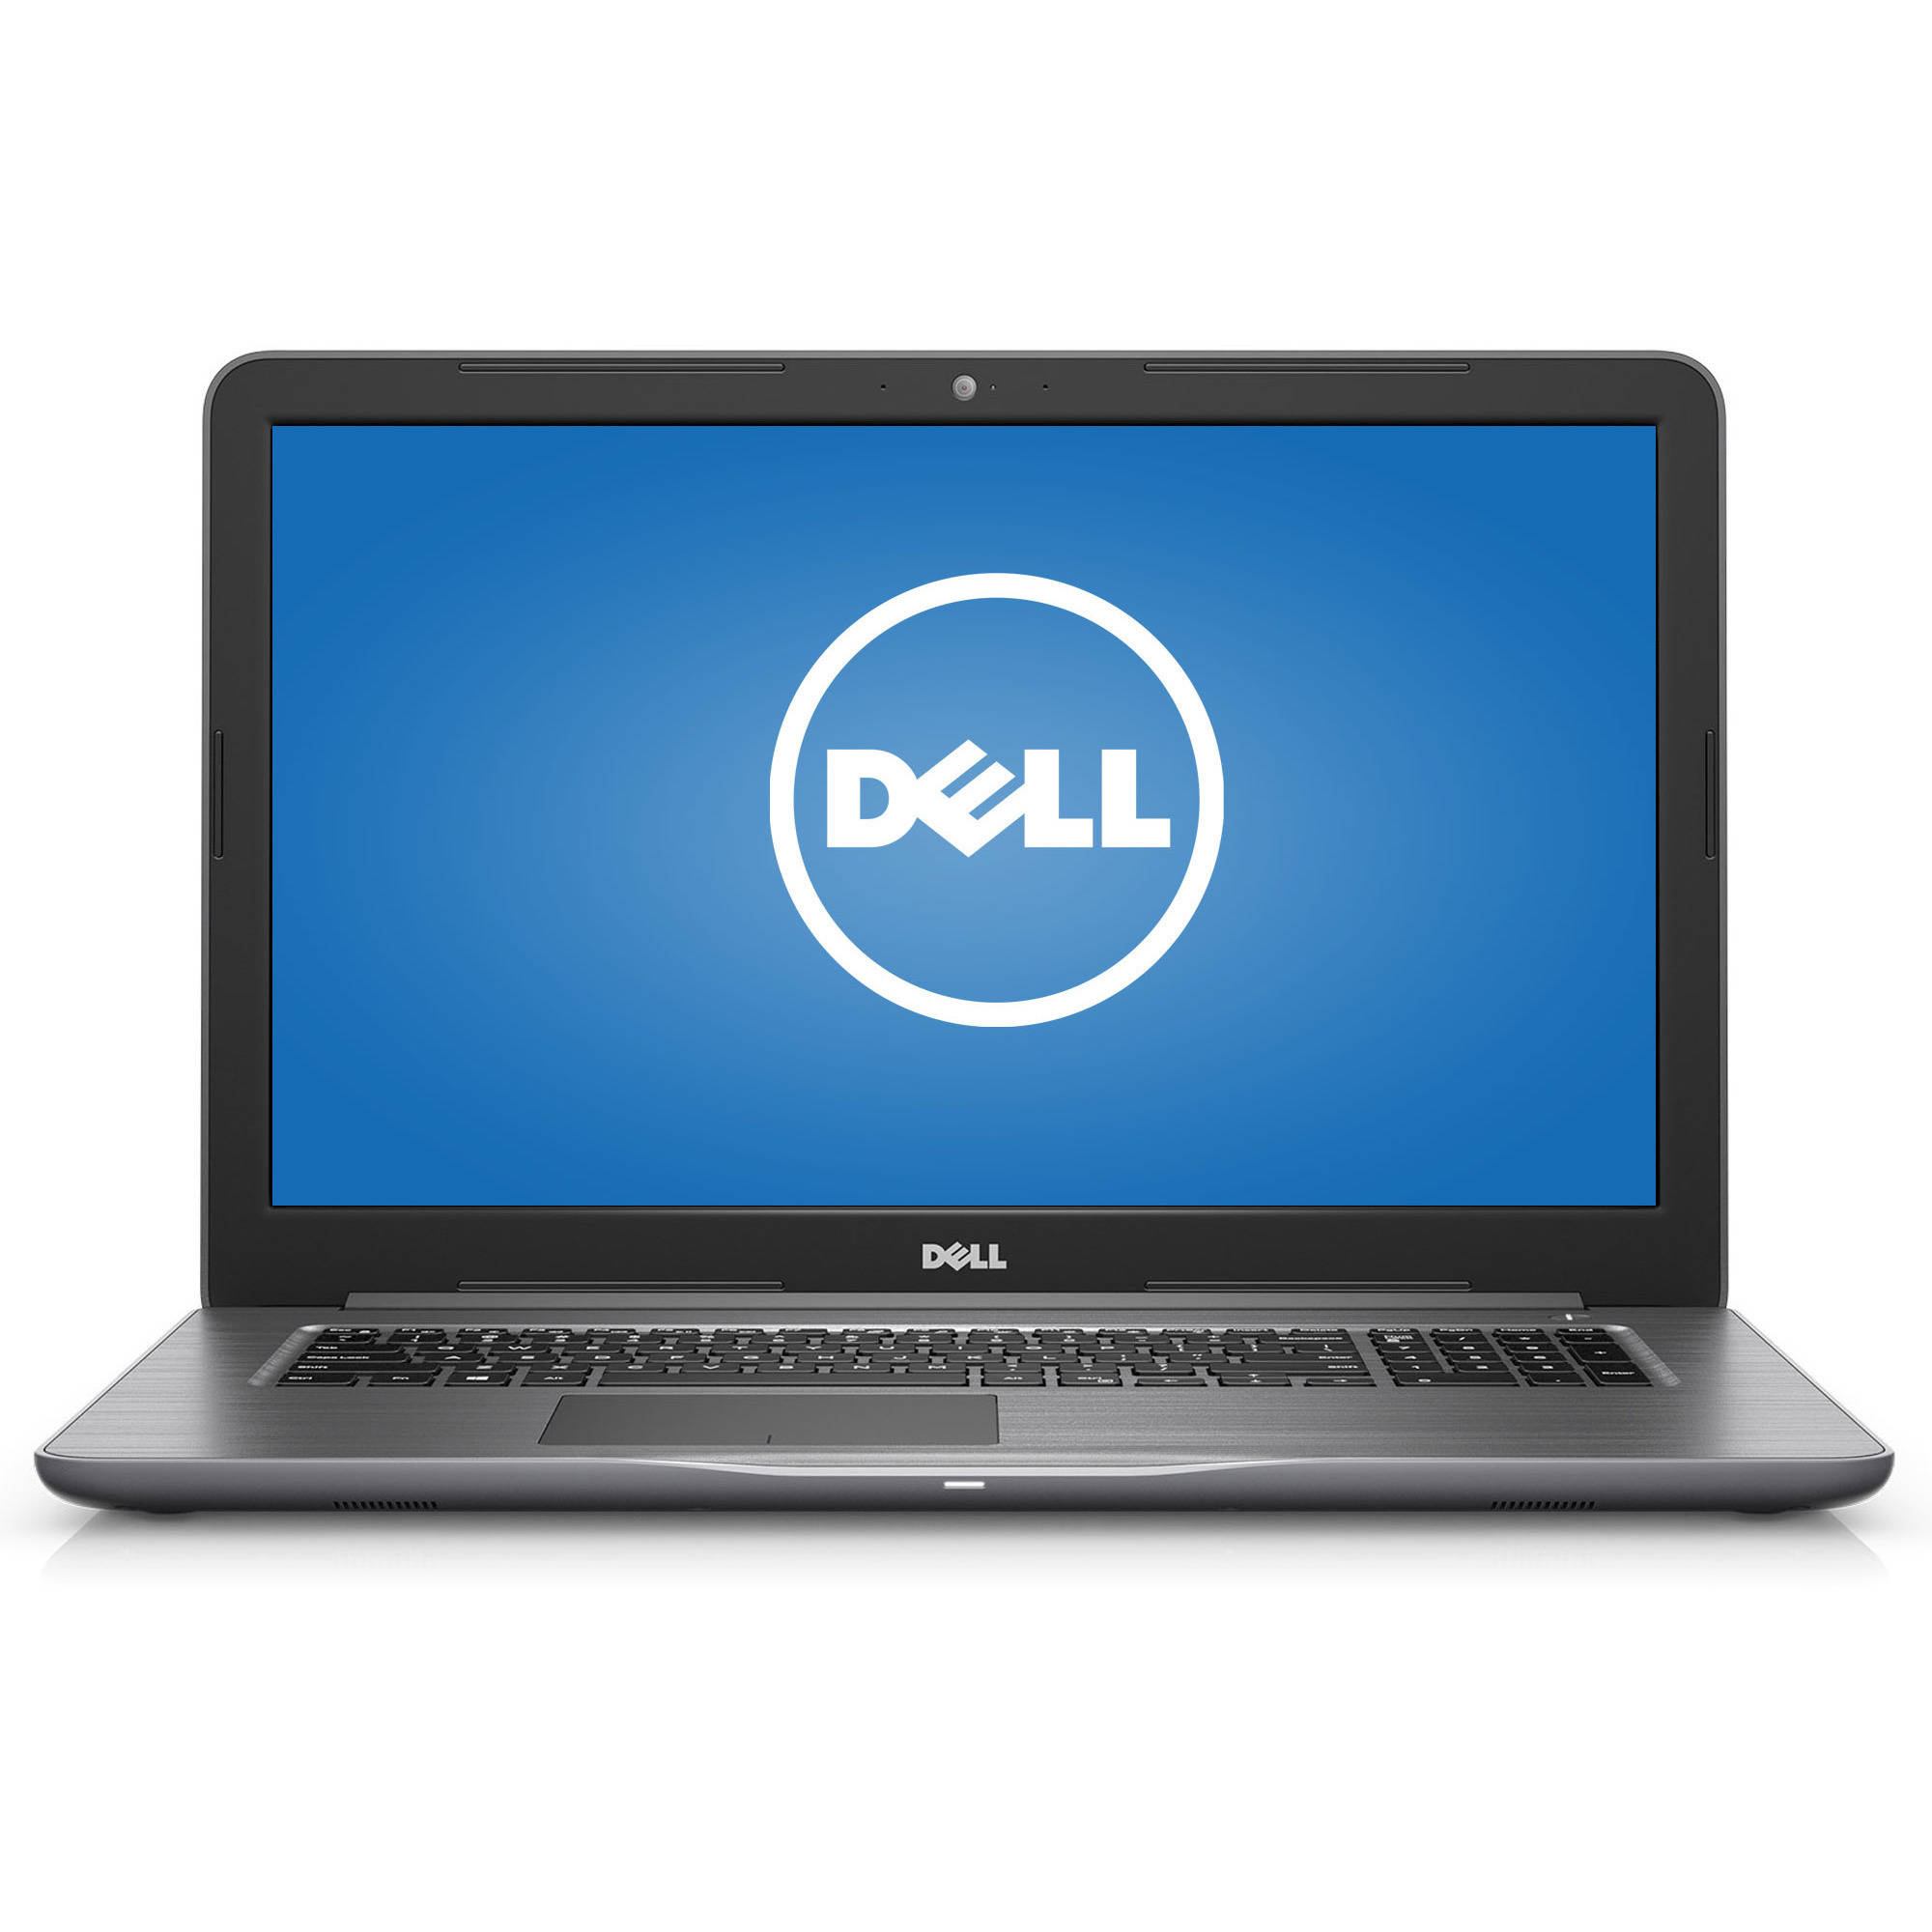 "Dell - Inspiron 17 5000 i5767 17.3"" Laptop, Windows 10 Home, Intel Core i7-7500U Processor, 8GB RAM, 1TB Hard Drive"